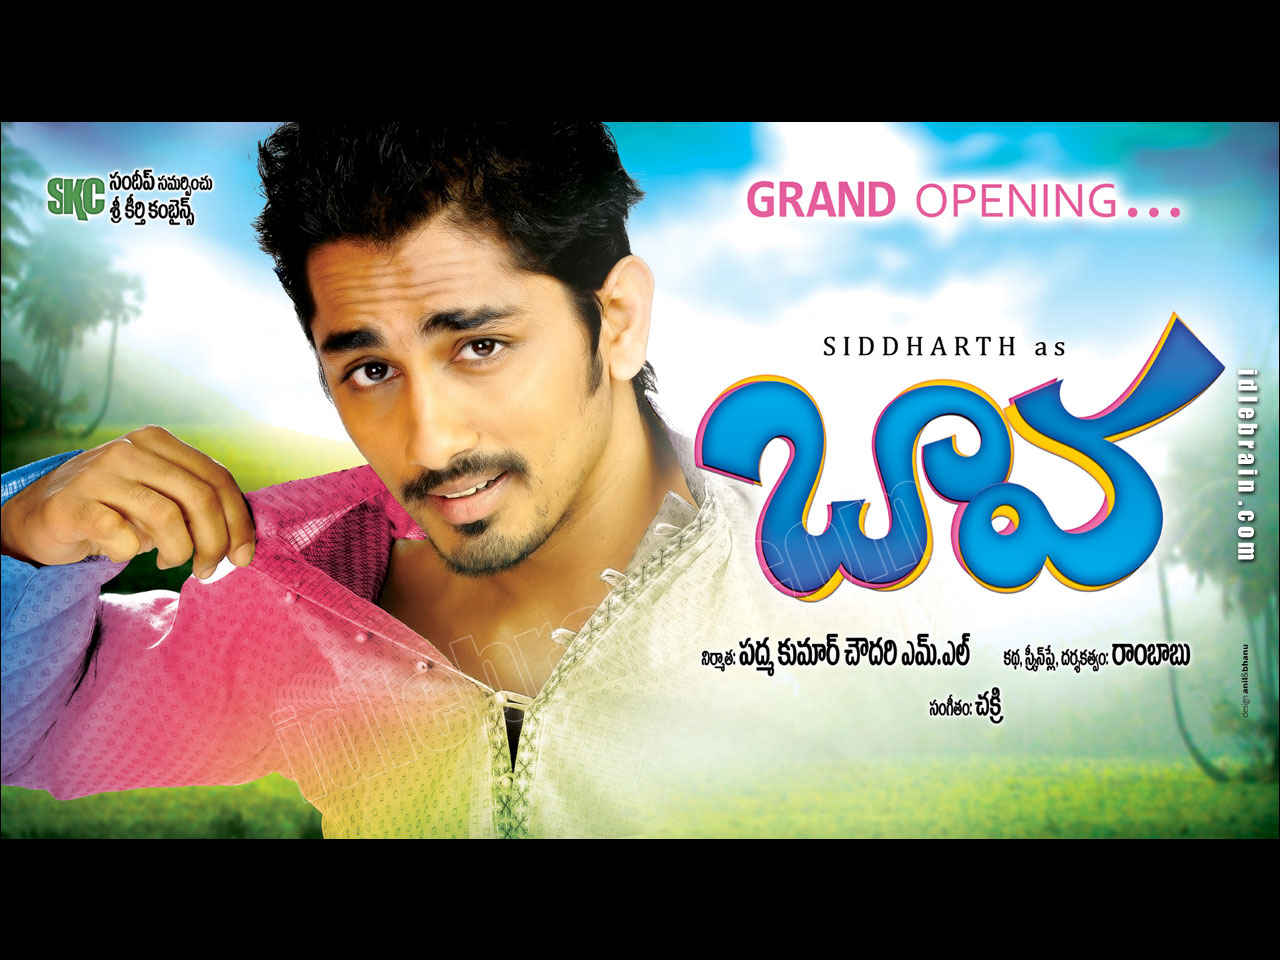 Baava movie